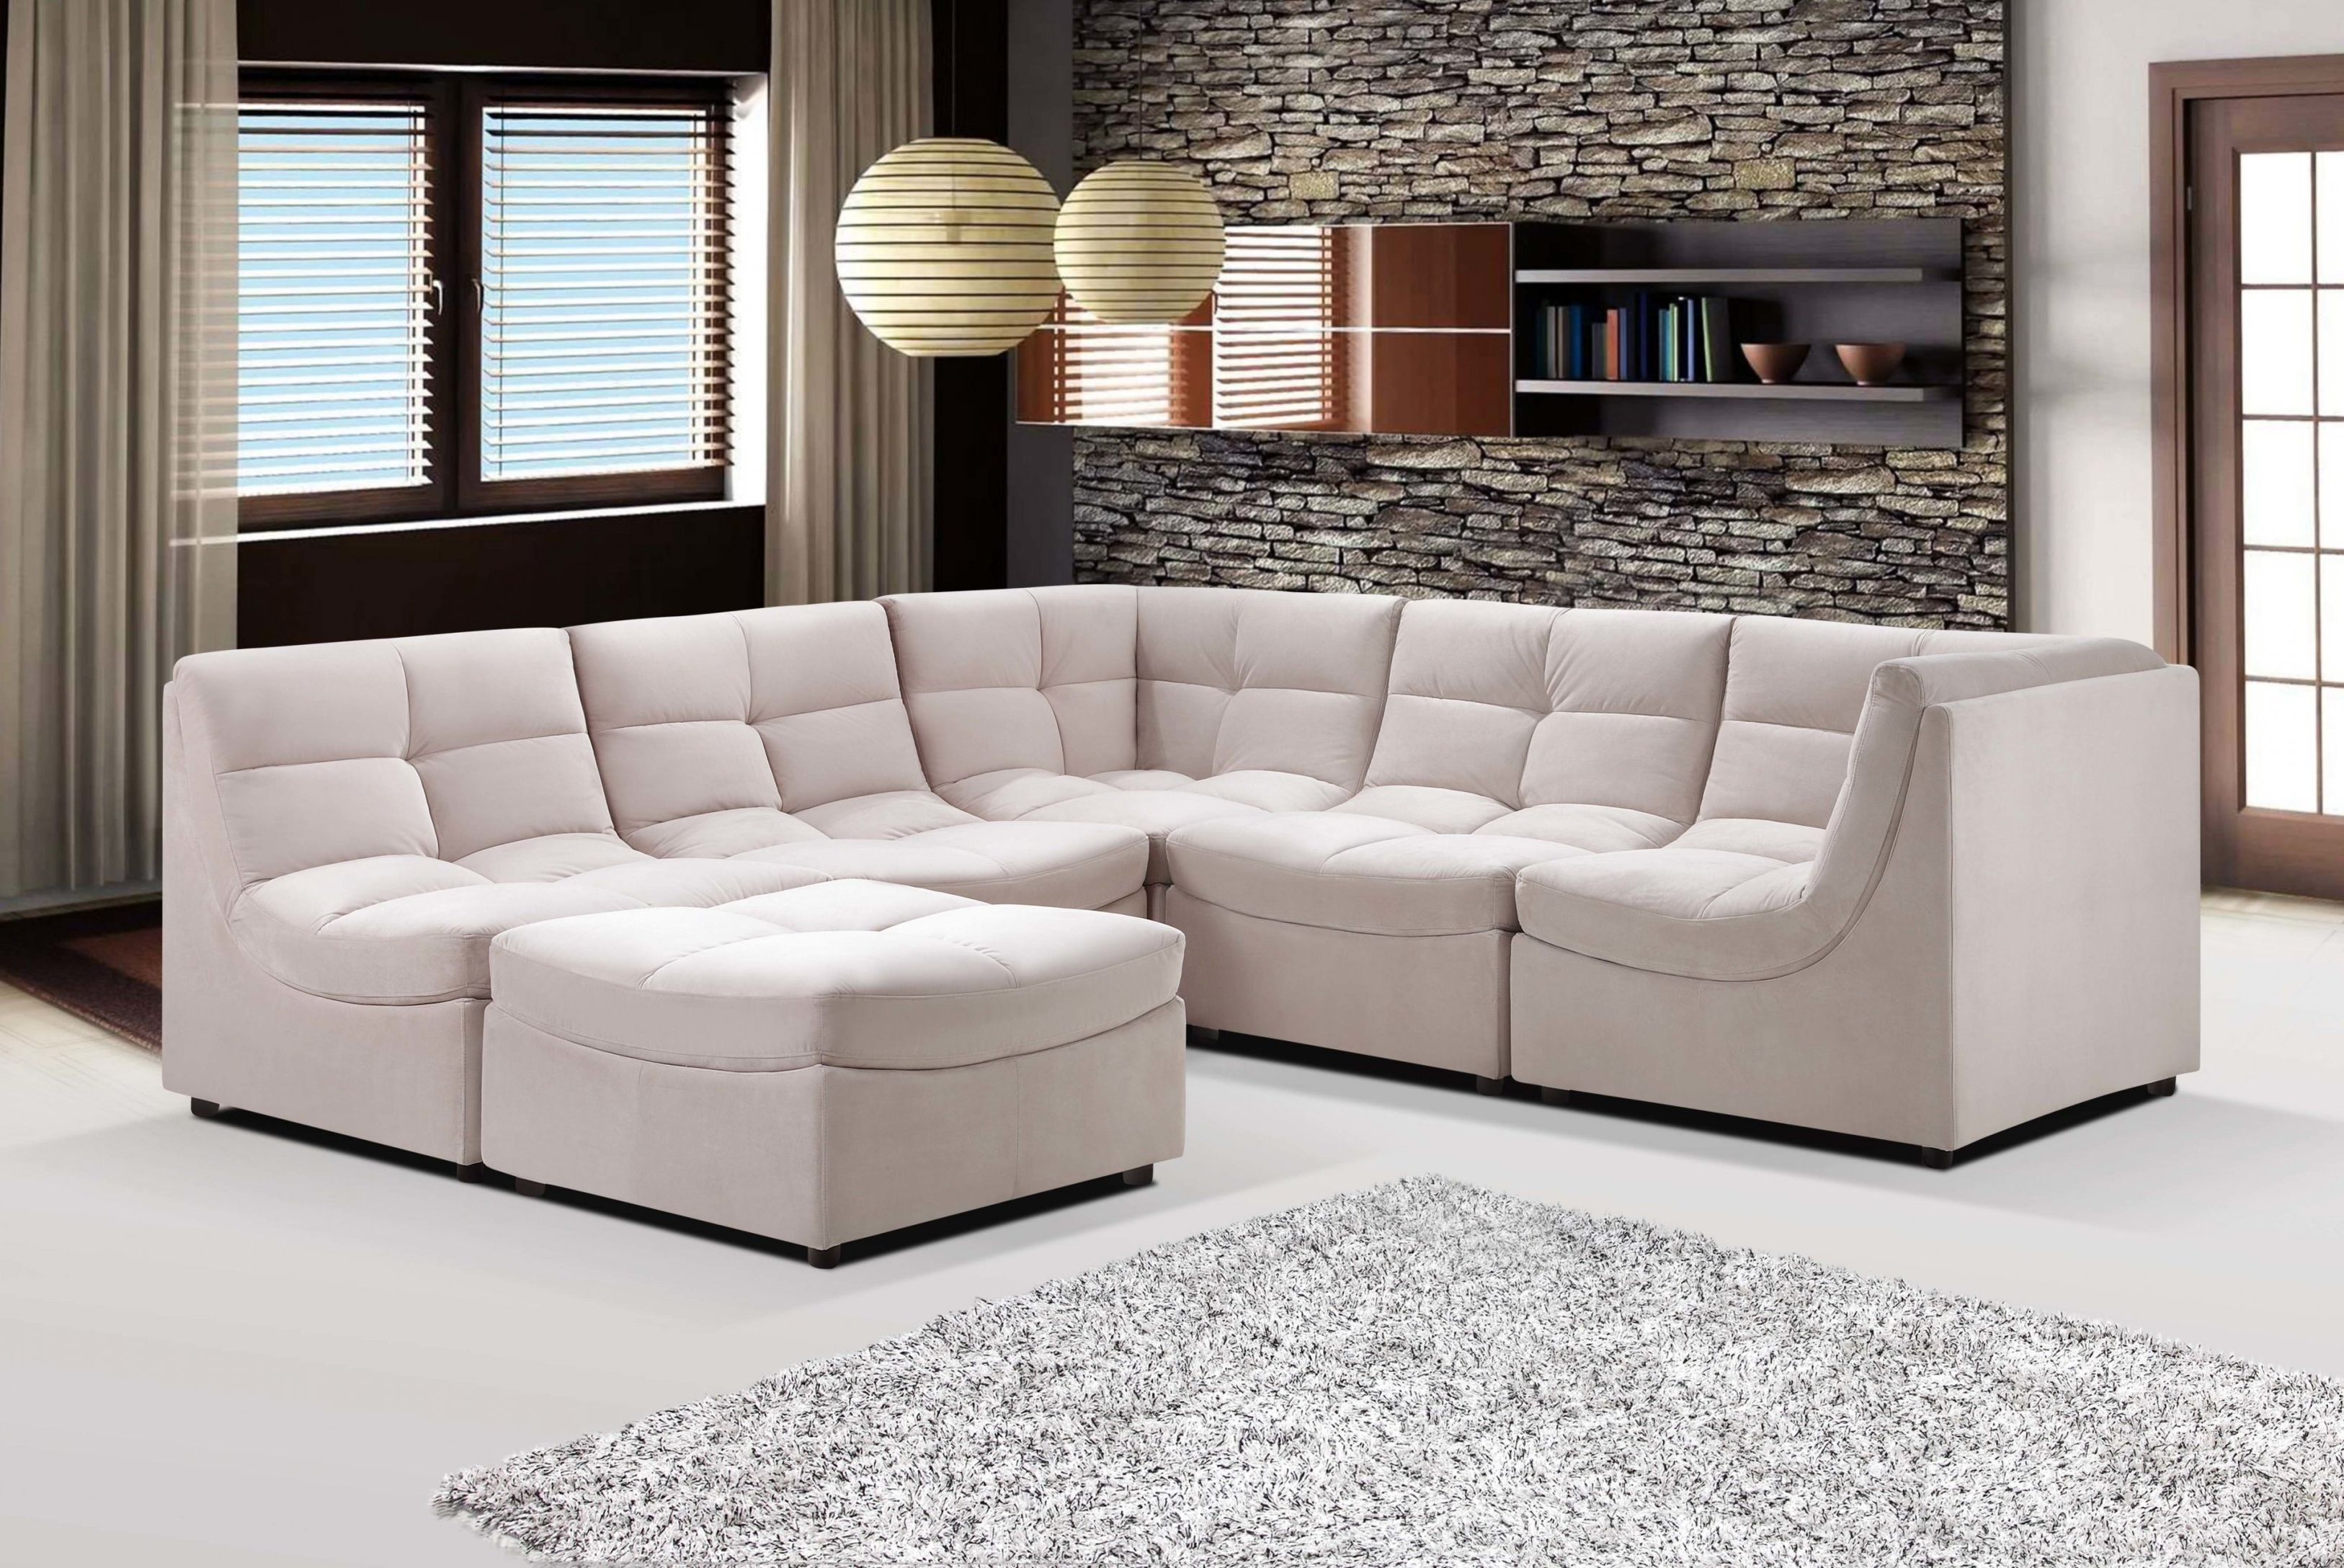 Latest Leather Modular Sectional Sofas Within Small Modular Sectional Sofa 21 For Your Sofa Sectionals For Cloud (View 5 of 20)